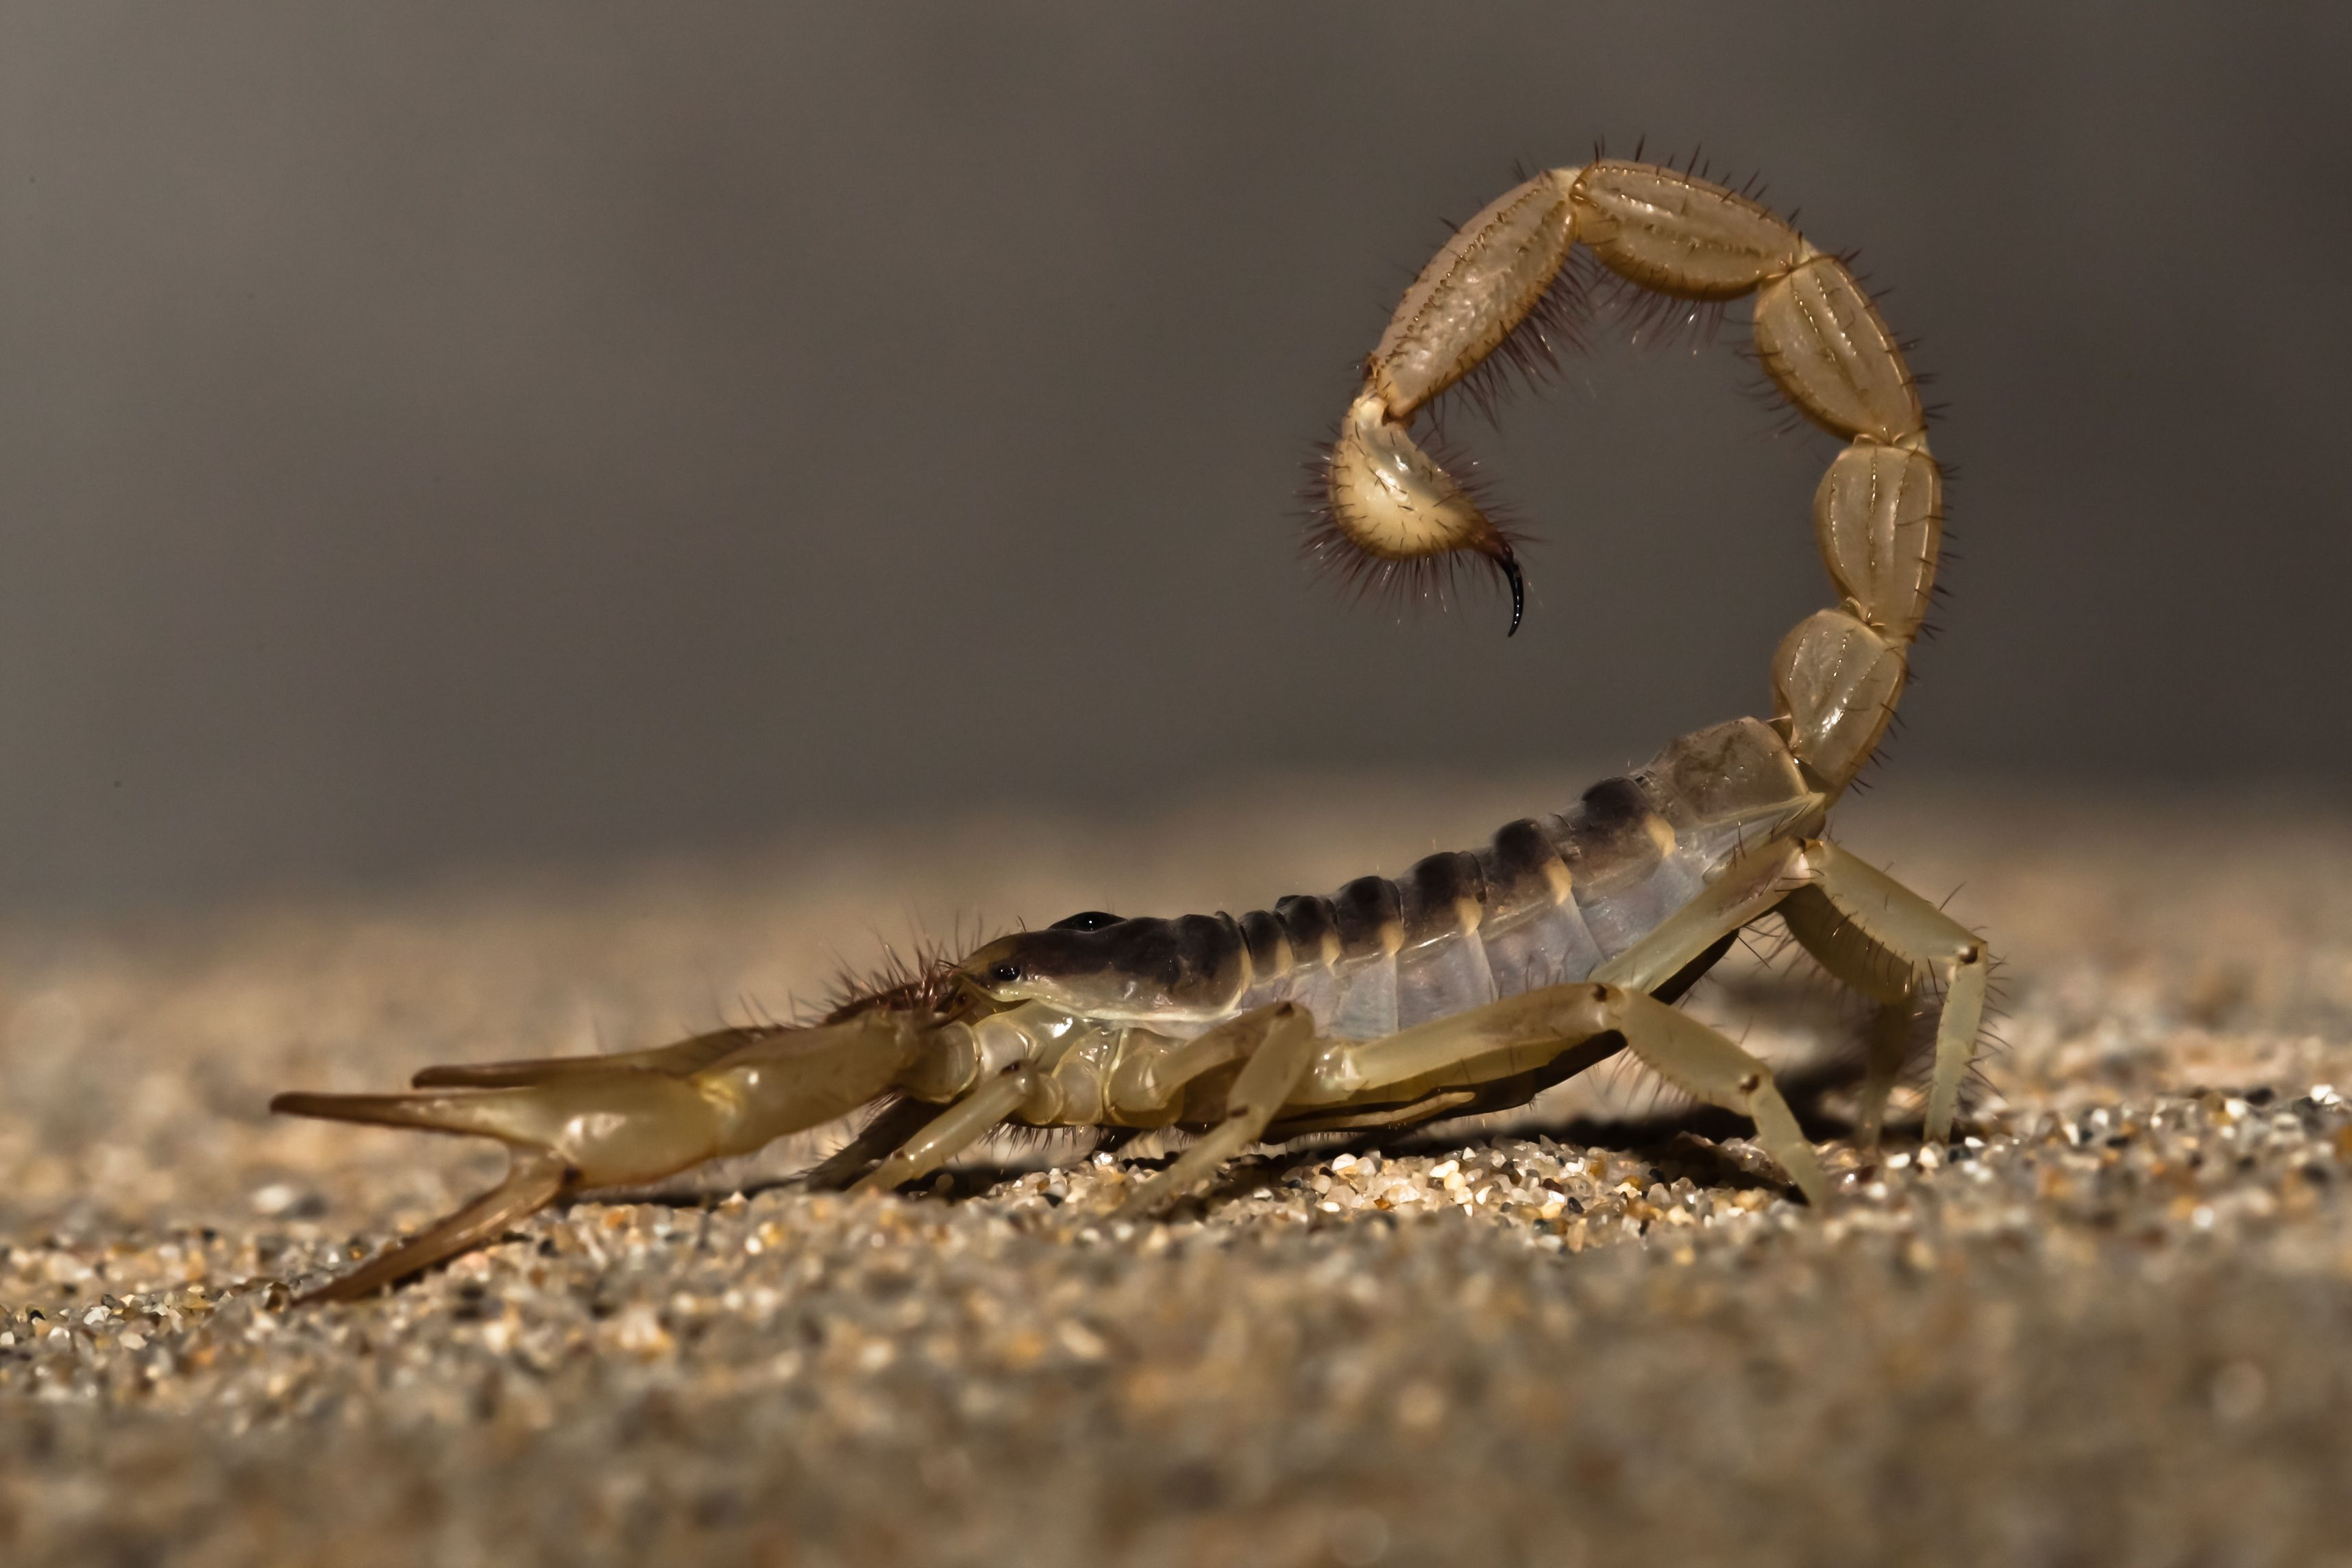 How To Protect Yourself From Scorpions